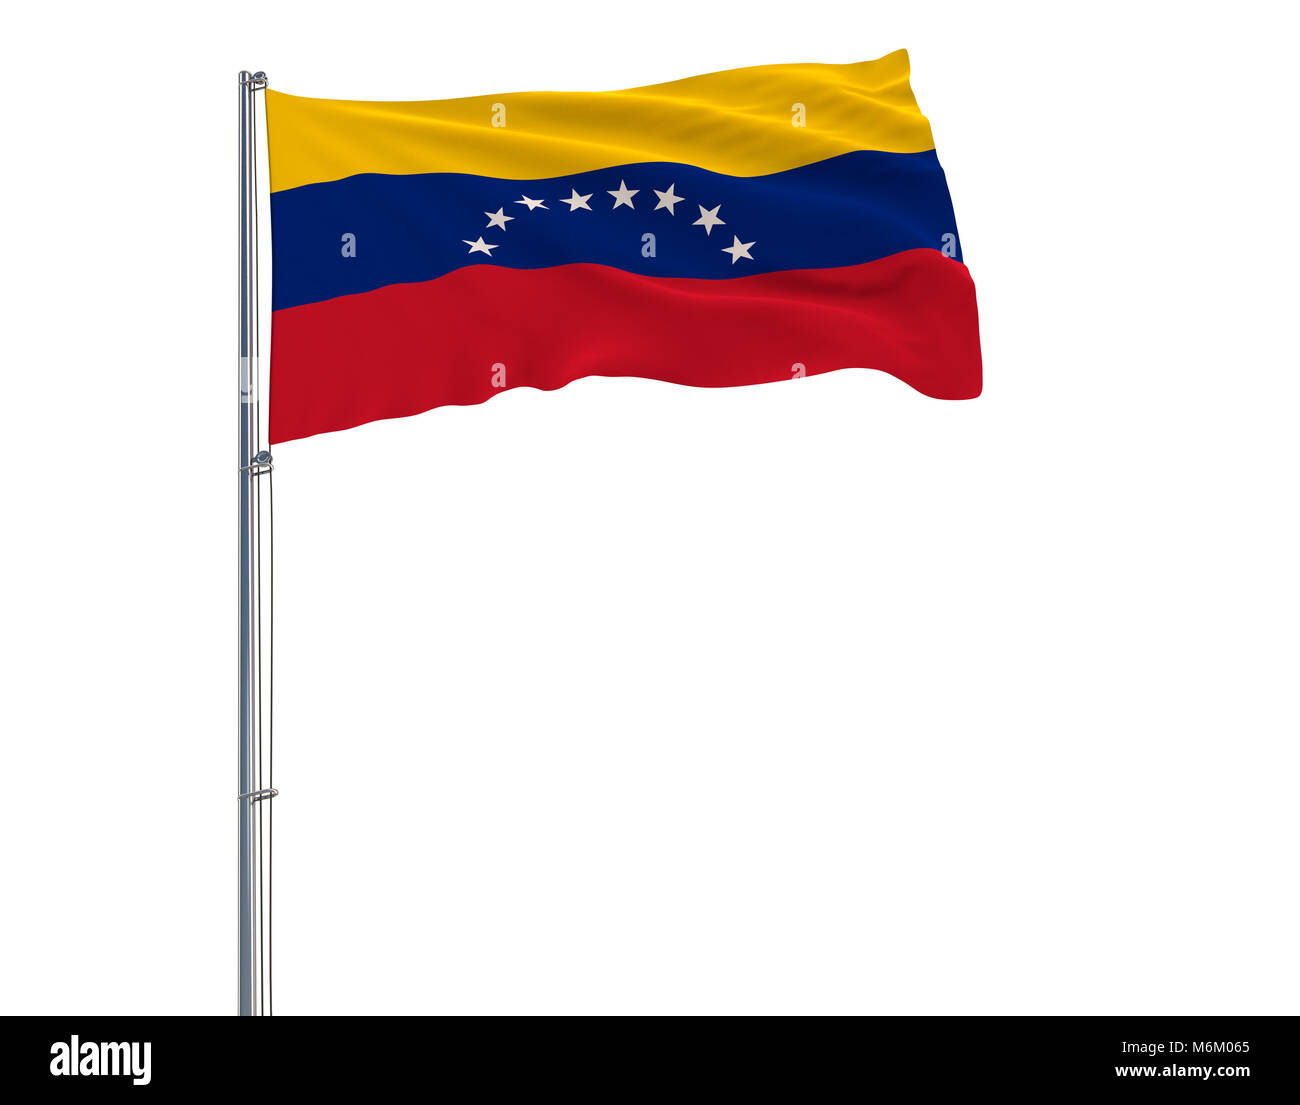 Flag of Venezuela on the flagpole fluttering in the wind on white background, 3d rendering - Stock Image